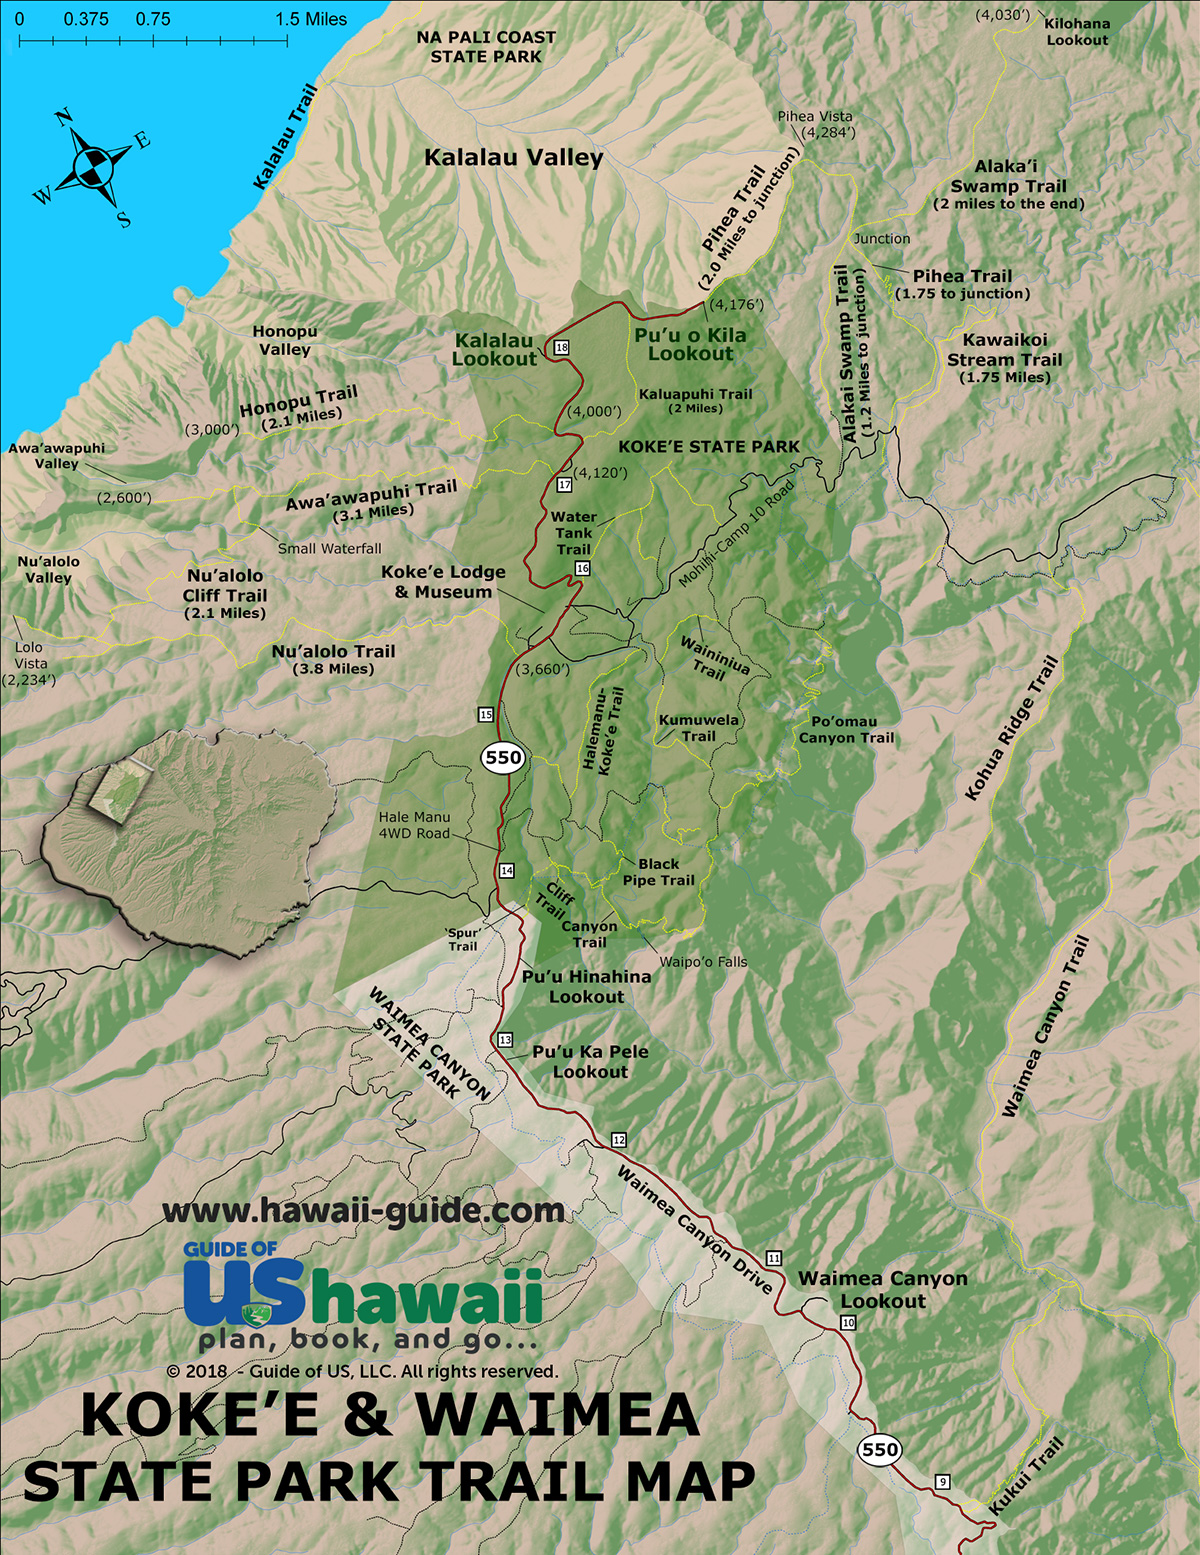 Kokee & Waimea State Park Hiking Trails | Kauai Hawaii